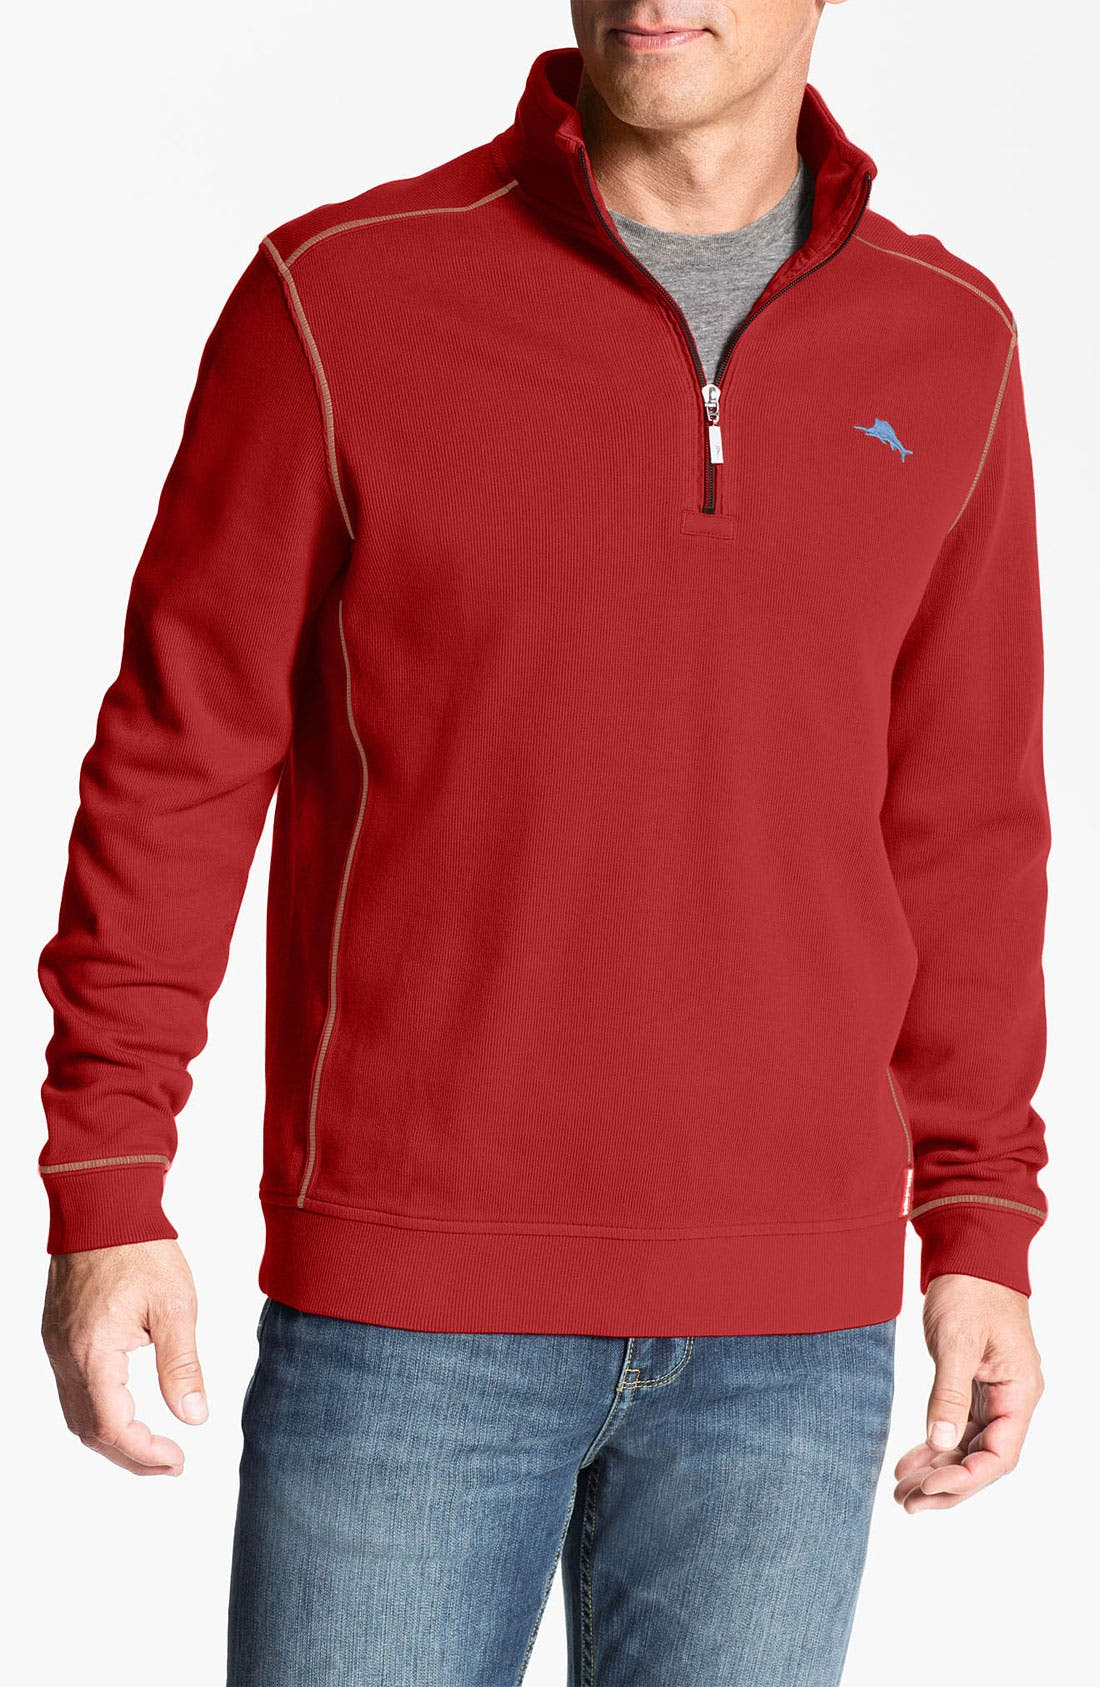 Alternate Image 1 Selected - Tommy Bahama 'Antigua Cove' Half Zip Pullover